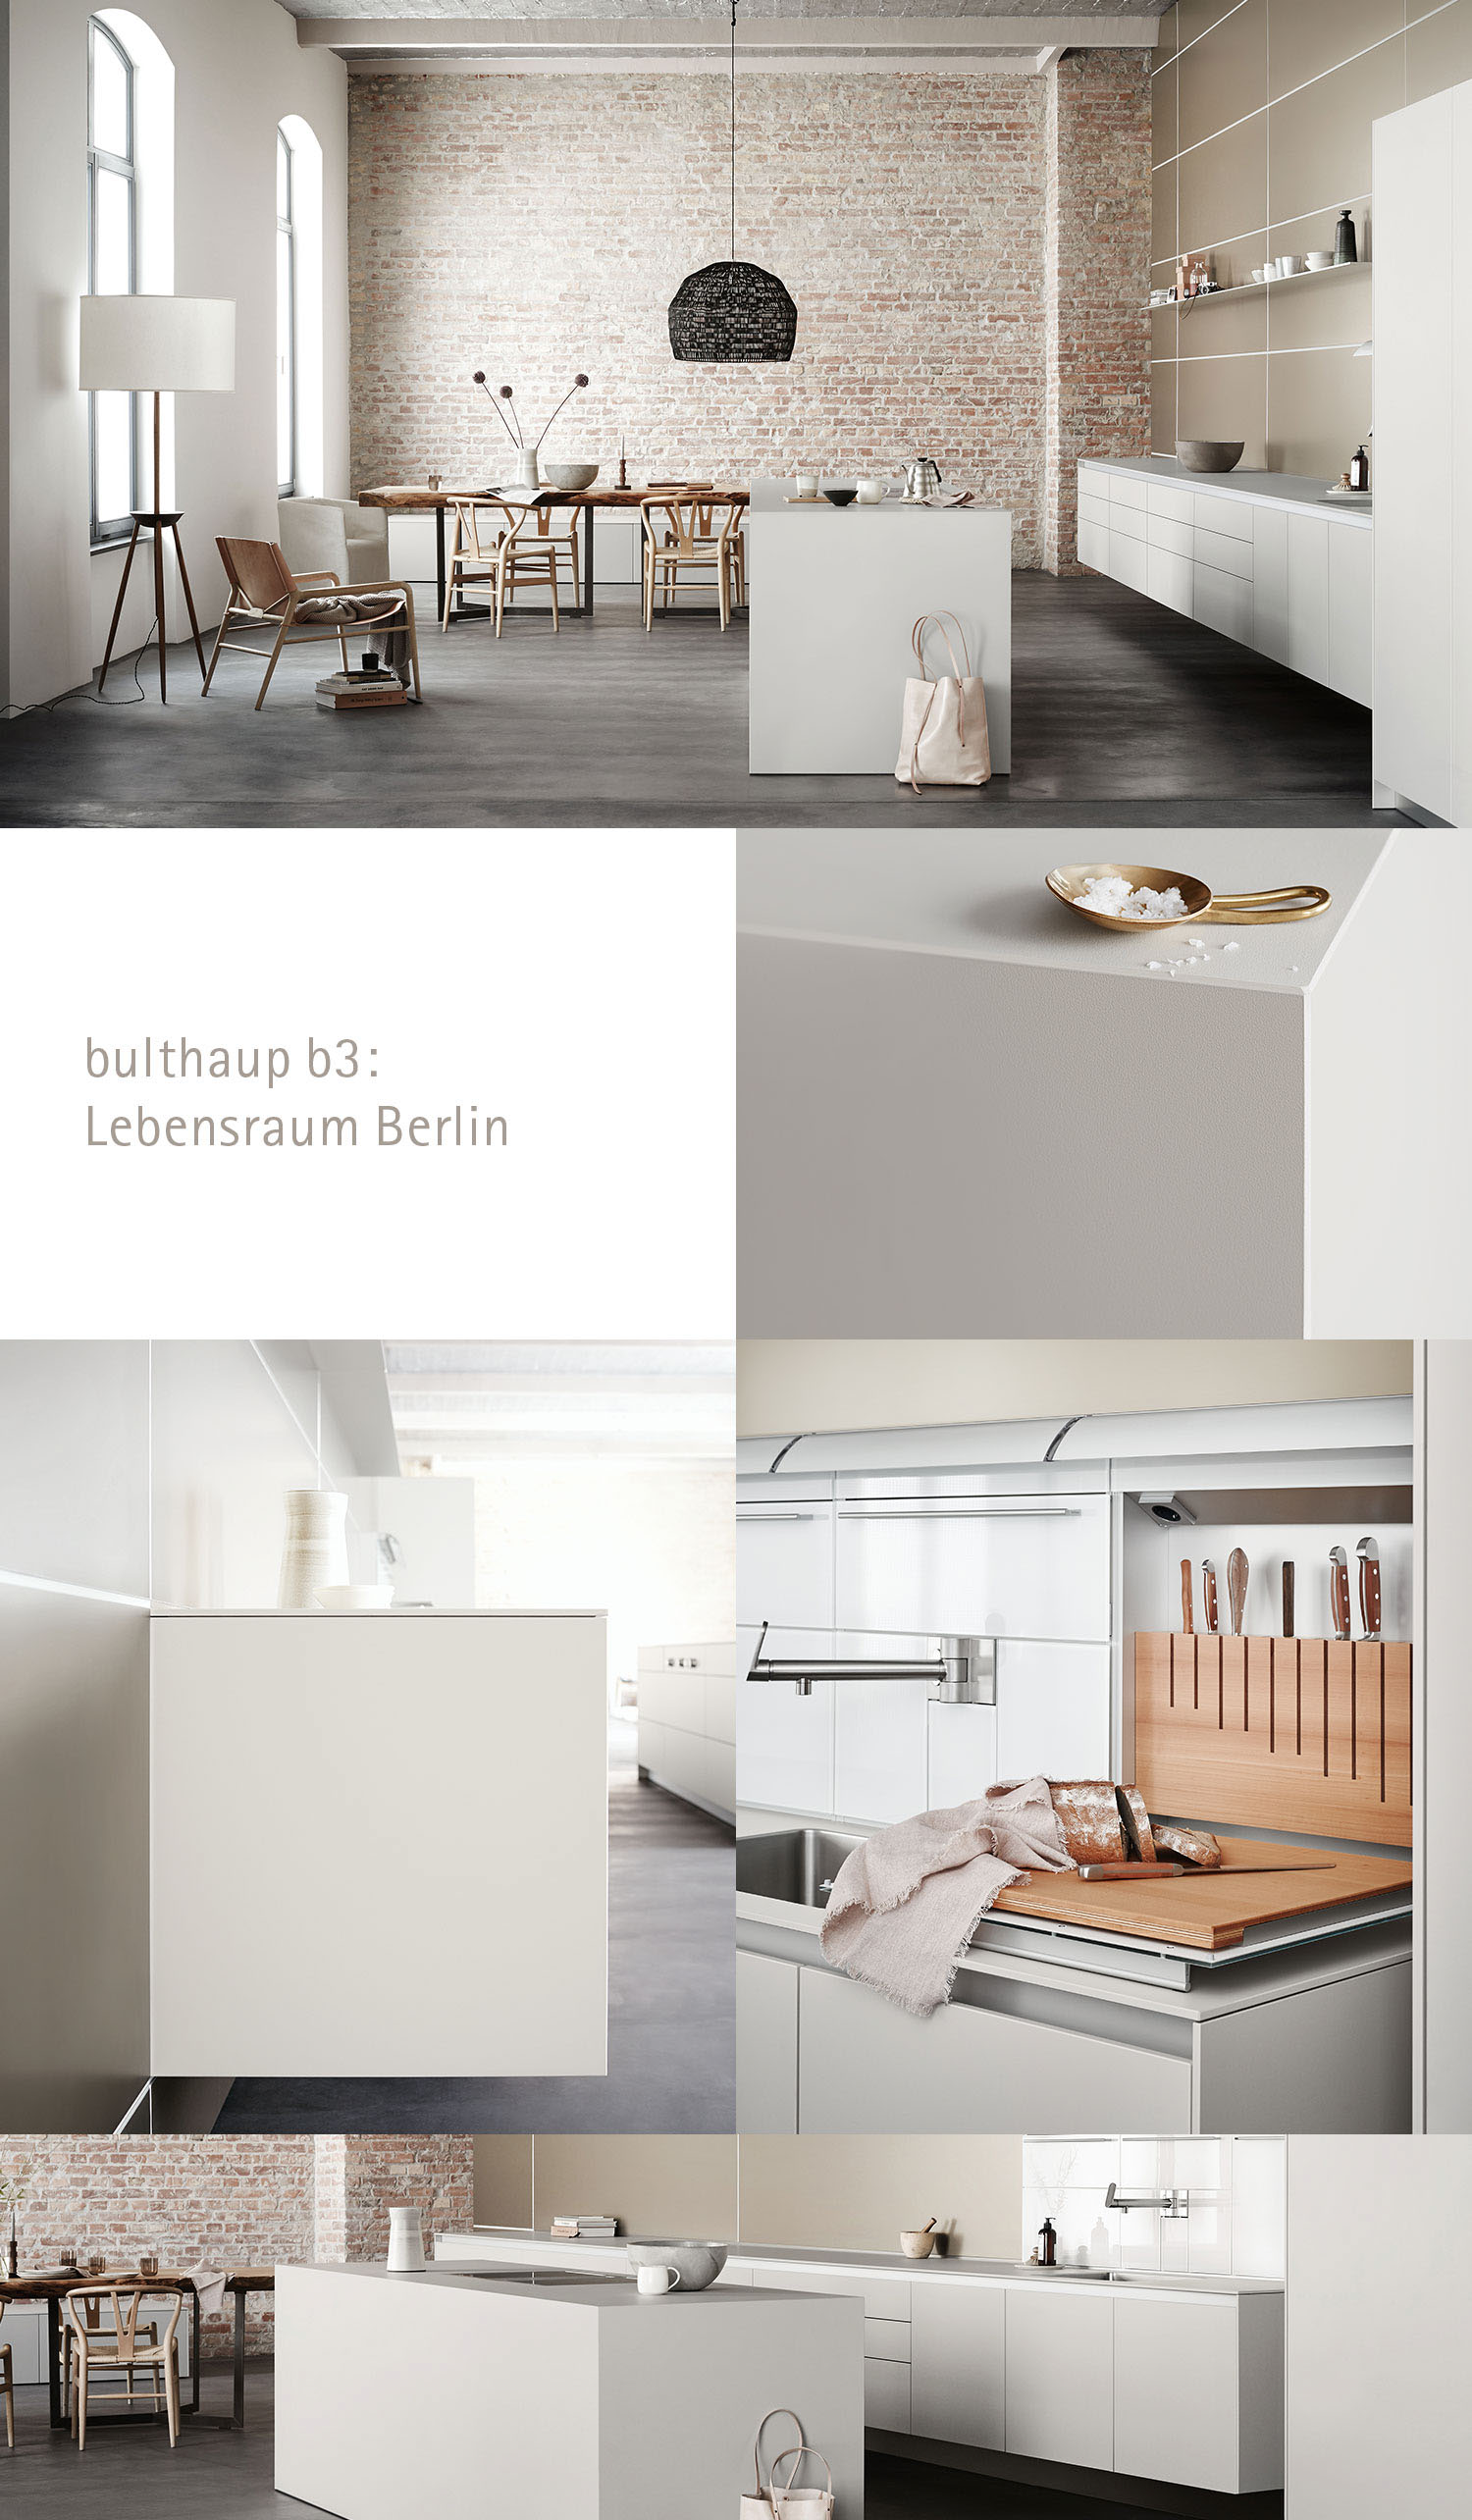 Bulthaup B3 Bulthaup B3: Lebensraum Berlin On Behance